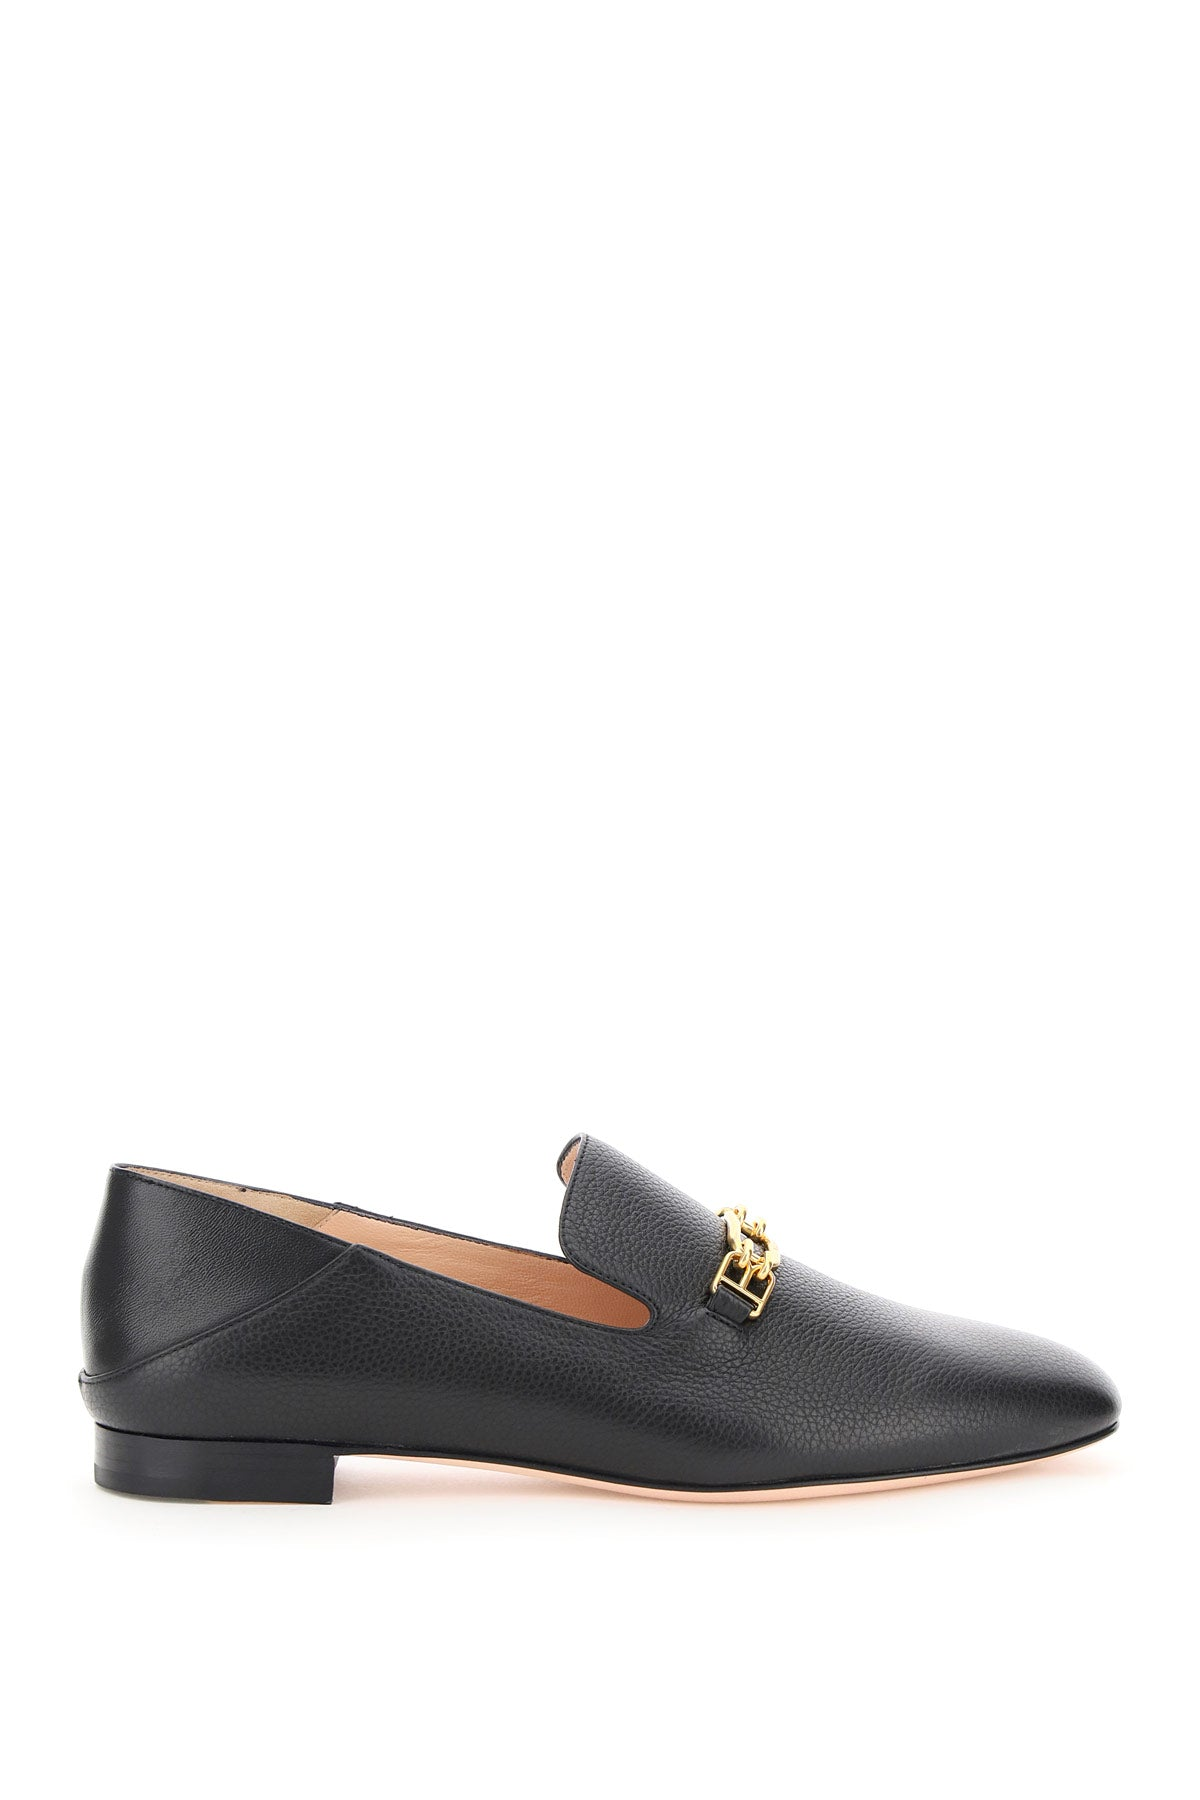 Bally BALLY DARCIE 1851 LOAFERS